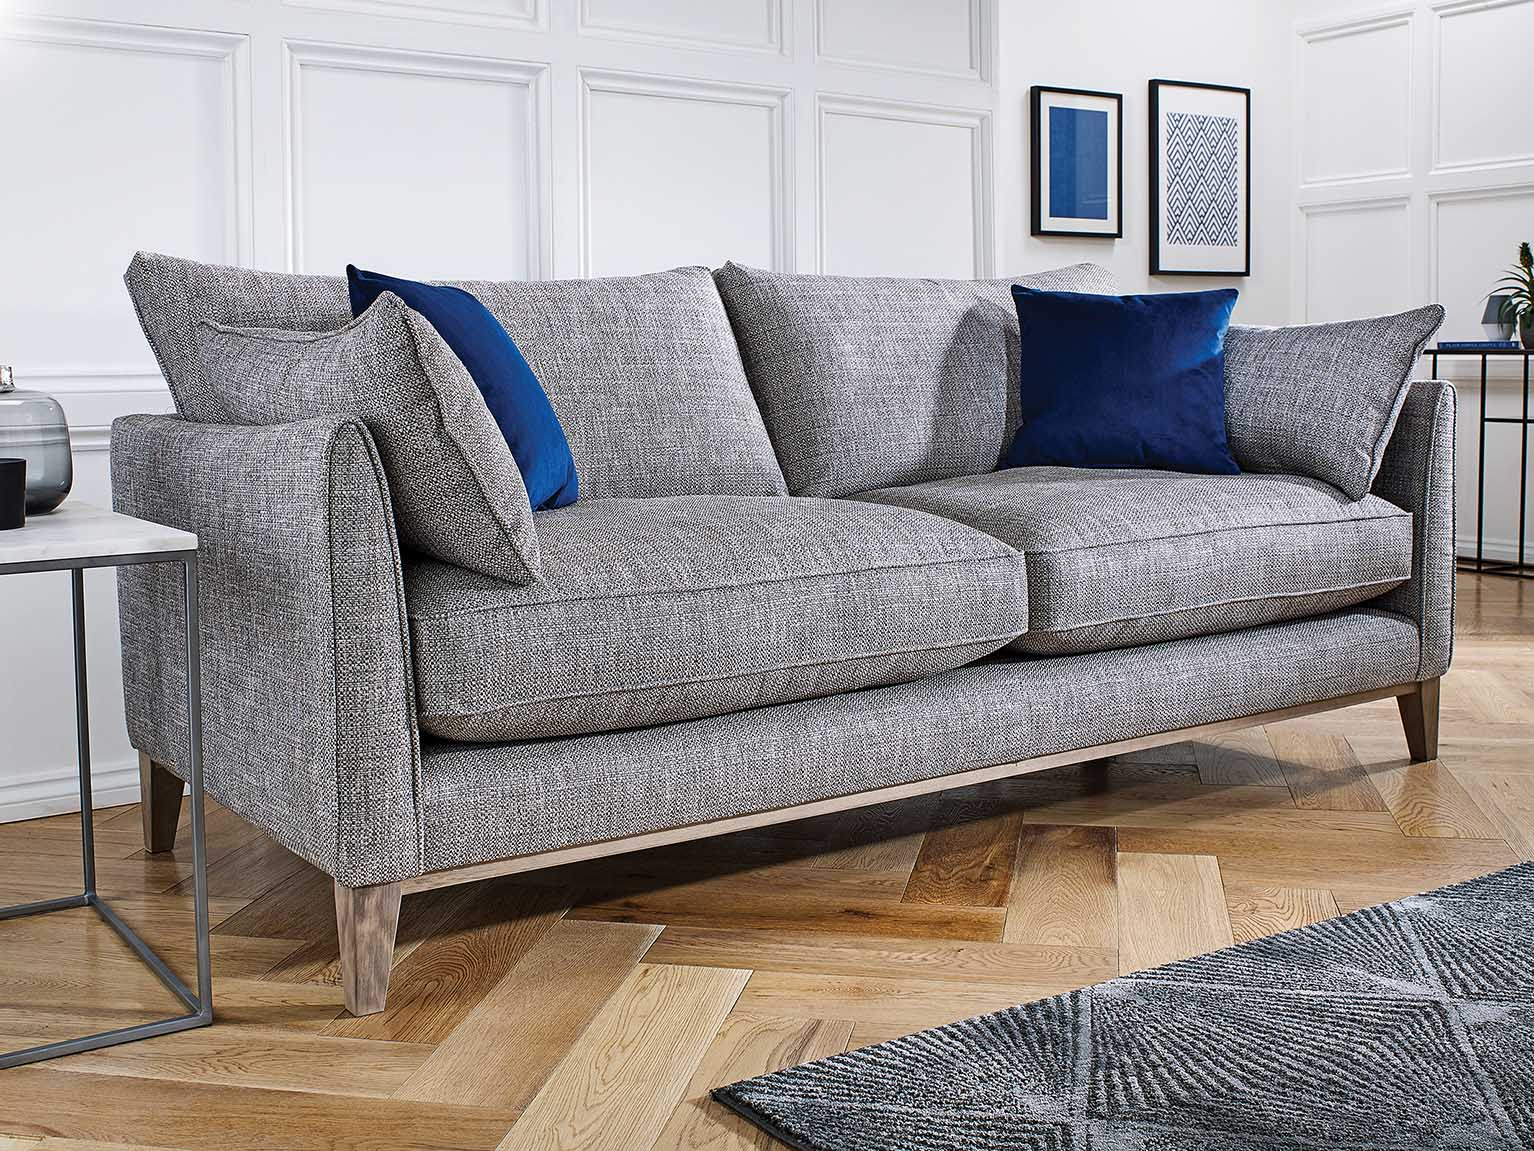 Aster sofa by Conran at Angela Reed